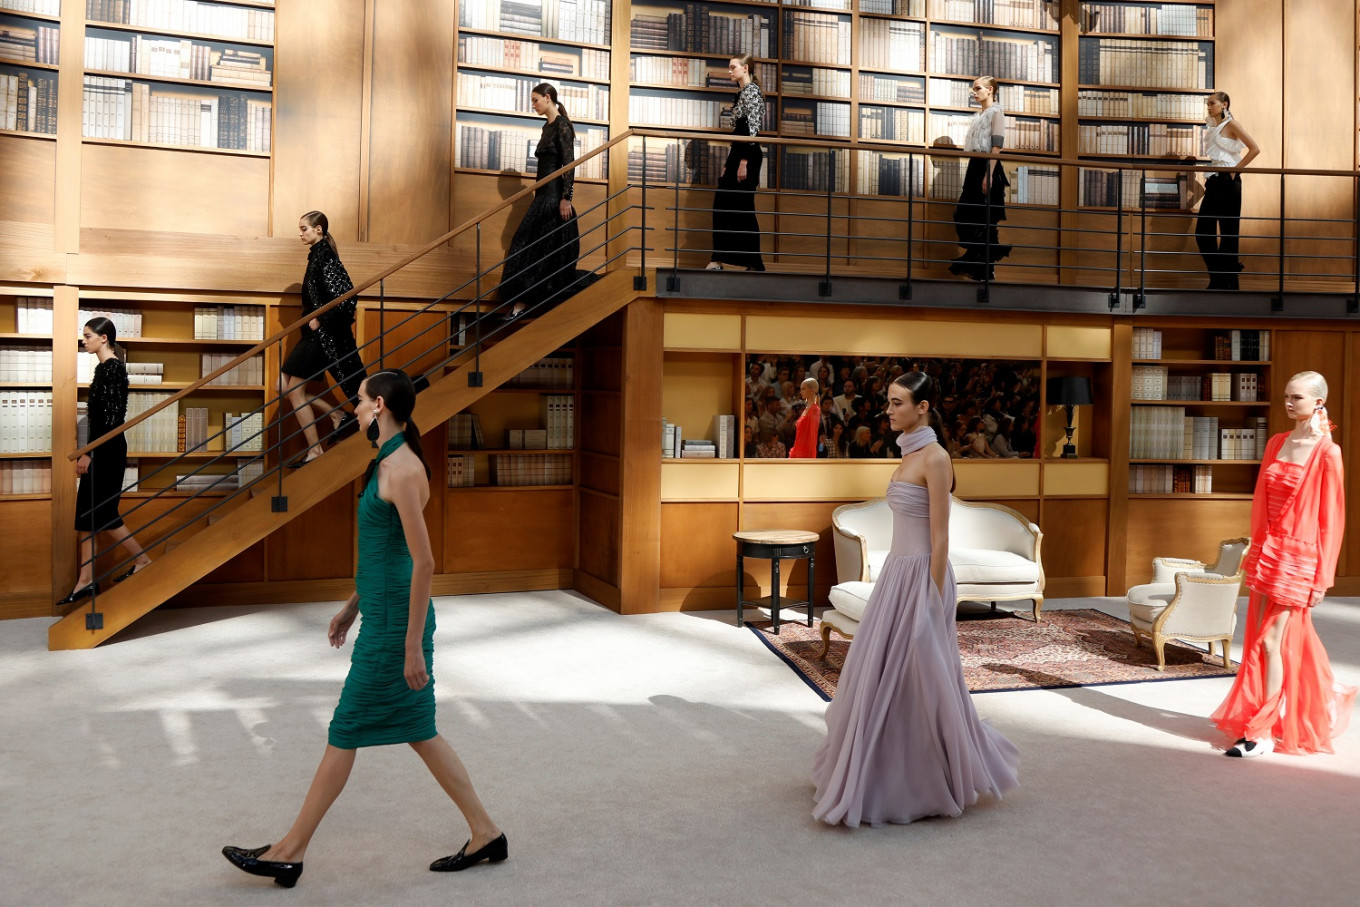 Lagerfeld successor brings demure librarians to Chanel catwalk - Lifestyle - The Jakarta Post